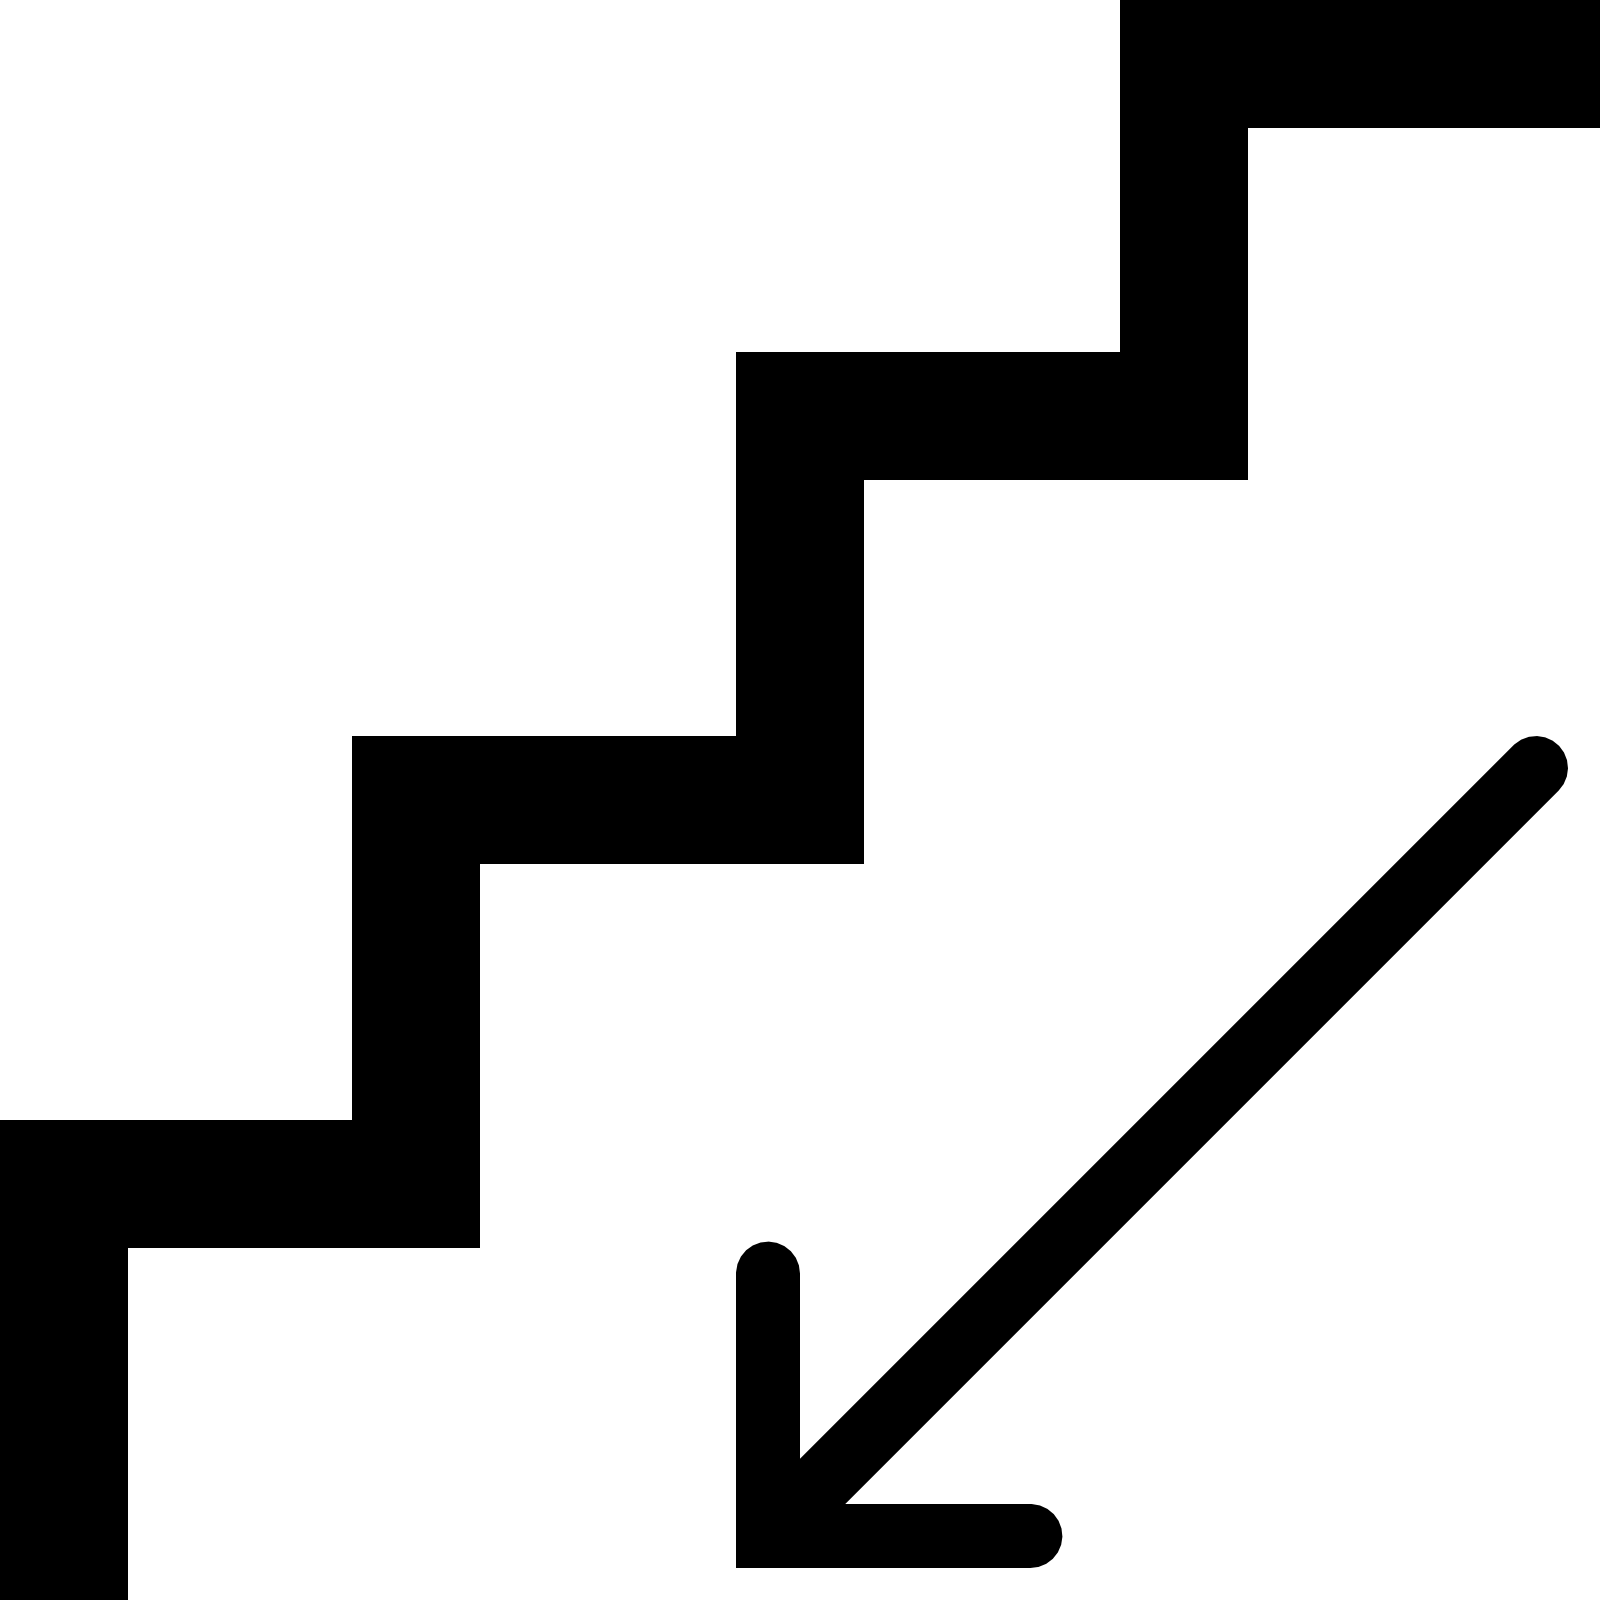 Floor clipart ground floor. Stairs computer icons attic